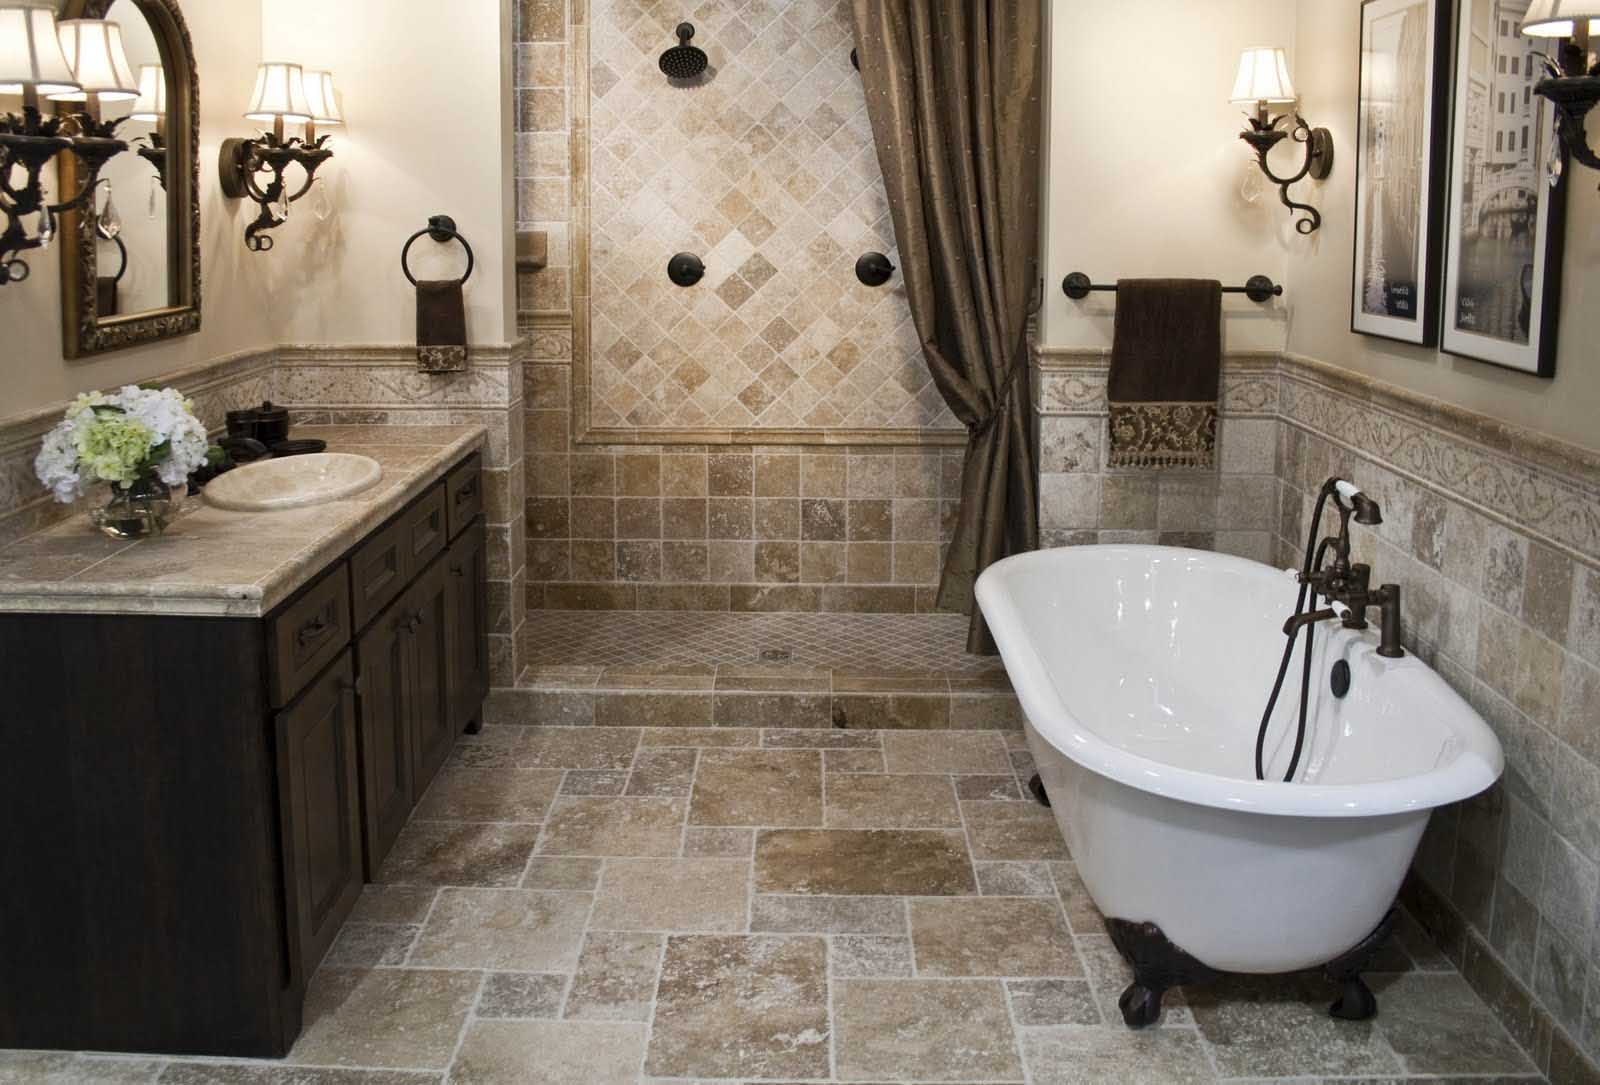 cost of remodeling a bathroom see what expenses for bathroom